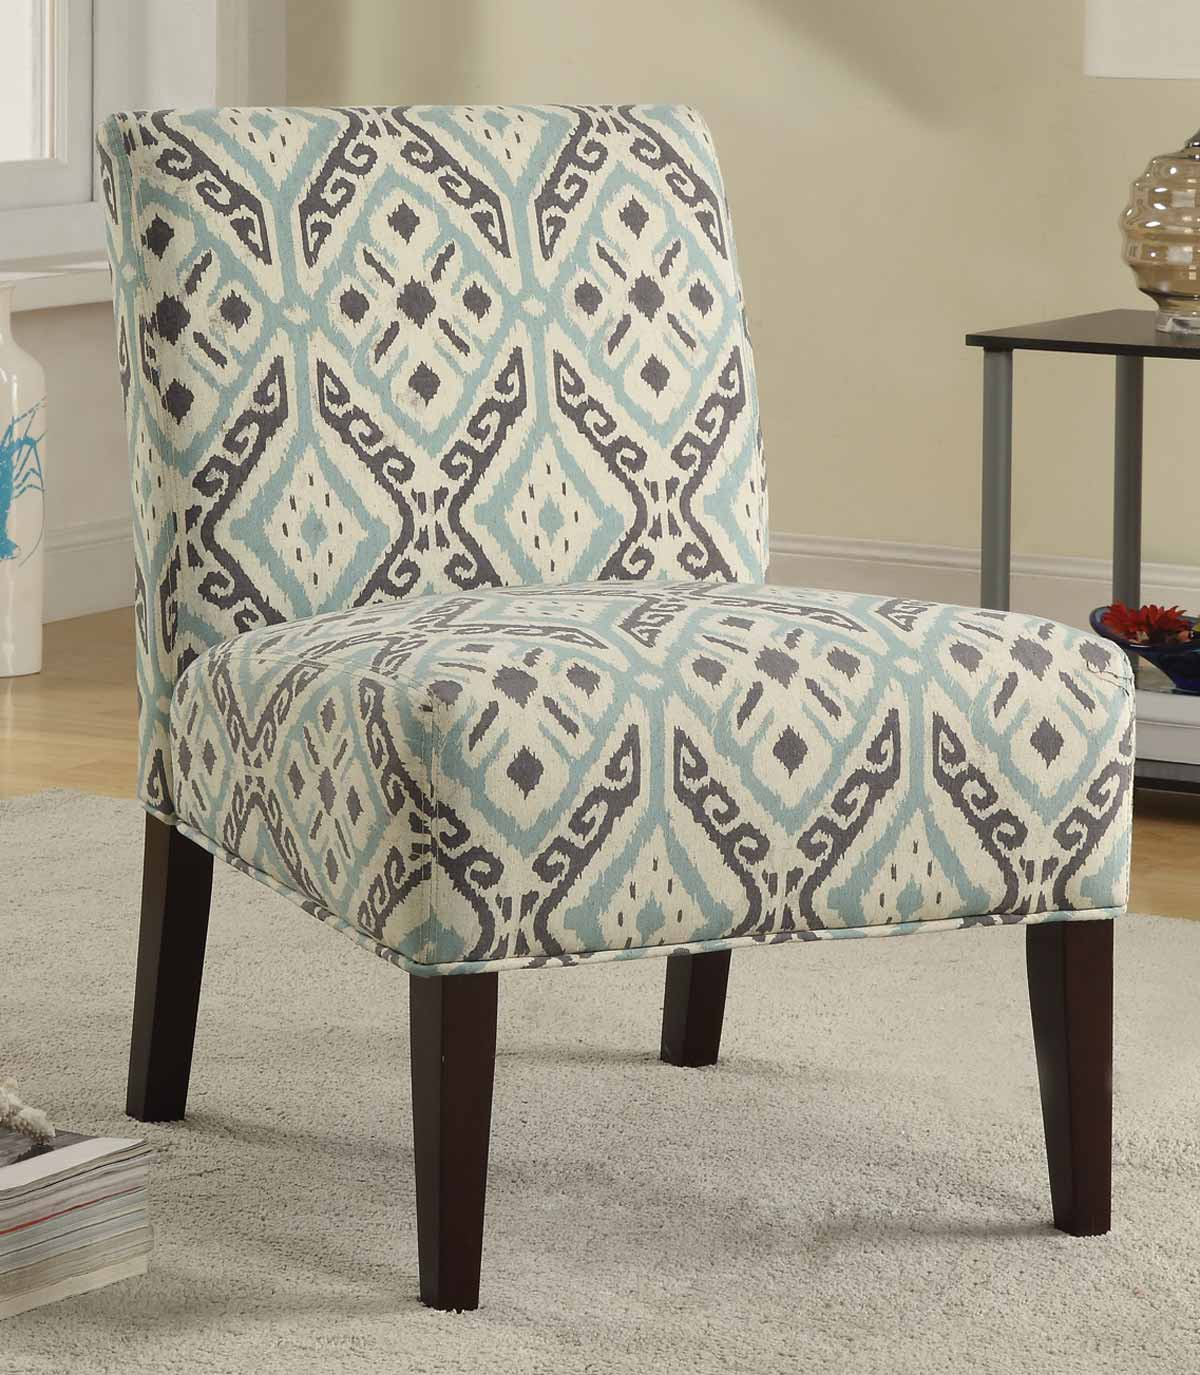 Coaster 902191 Accent Chair - Brown/Light Blue